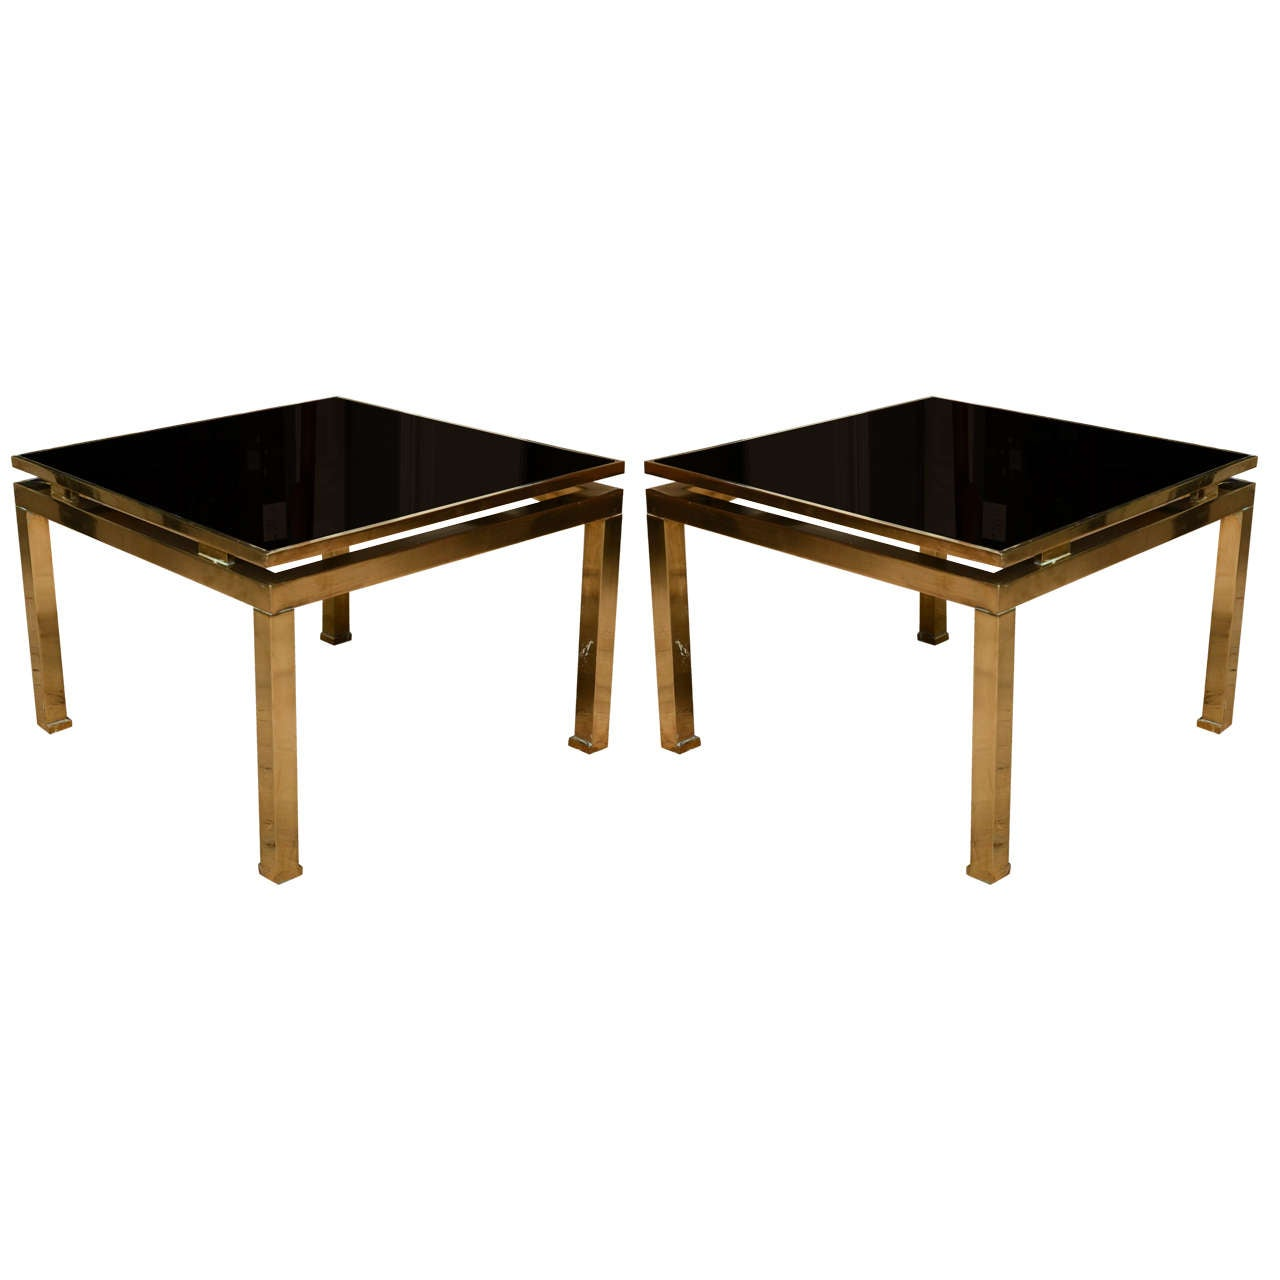 Pair of Brass Midcentury French Occasional Tables by Guy Lefevre for Maison Jan